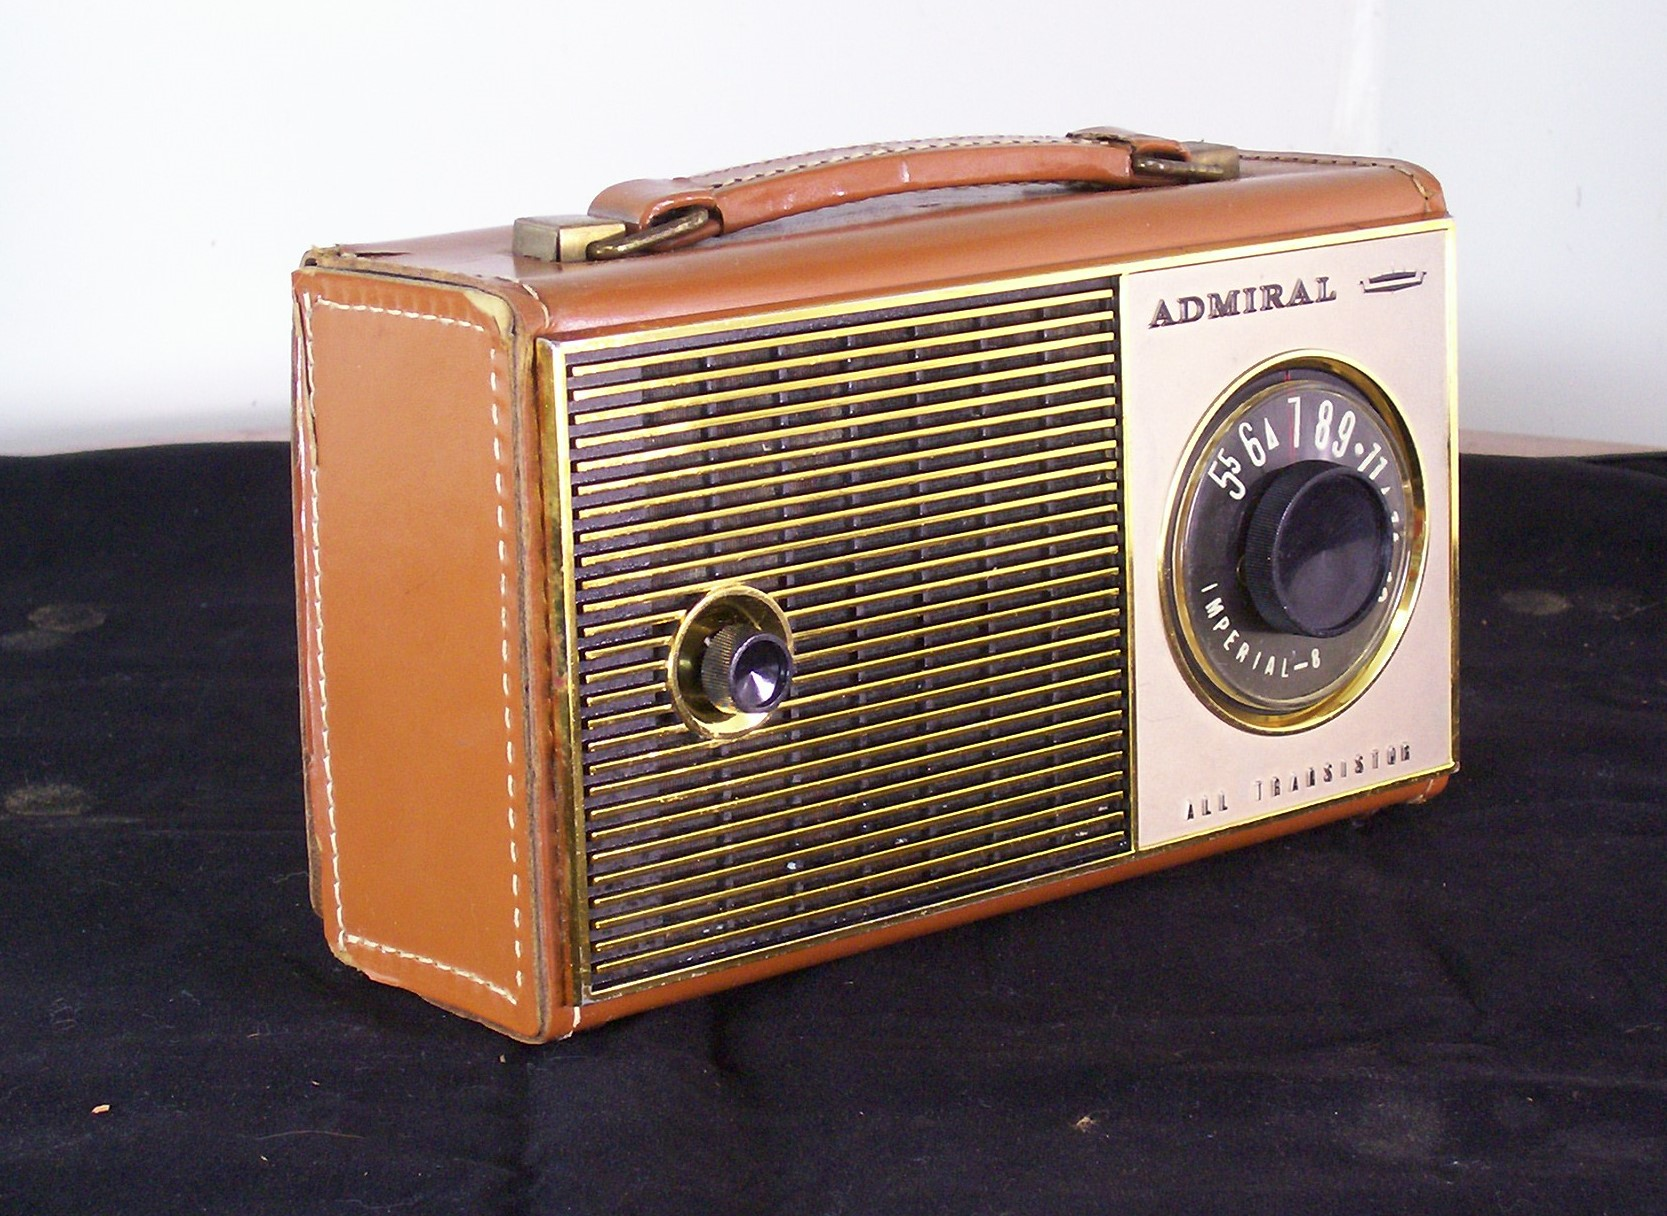 Broadcast Radio Radio Sets Transistor further Transistor Radios together with TransistorRadios likewise Vintage Ross Remembrance Mini Am further Watch. on tr 6 transistor radio sony